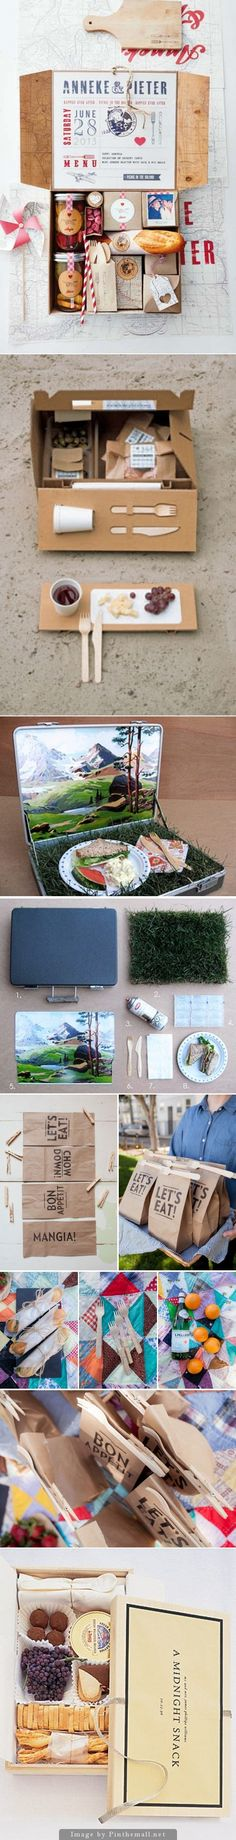 Celebrate National Picnic Day. Lets go on a picnic packaging curated via Packaging Diva PD from my Pinterest boards created via http://pinterest.com/packagingdiva